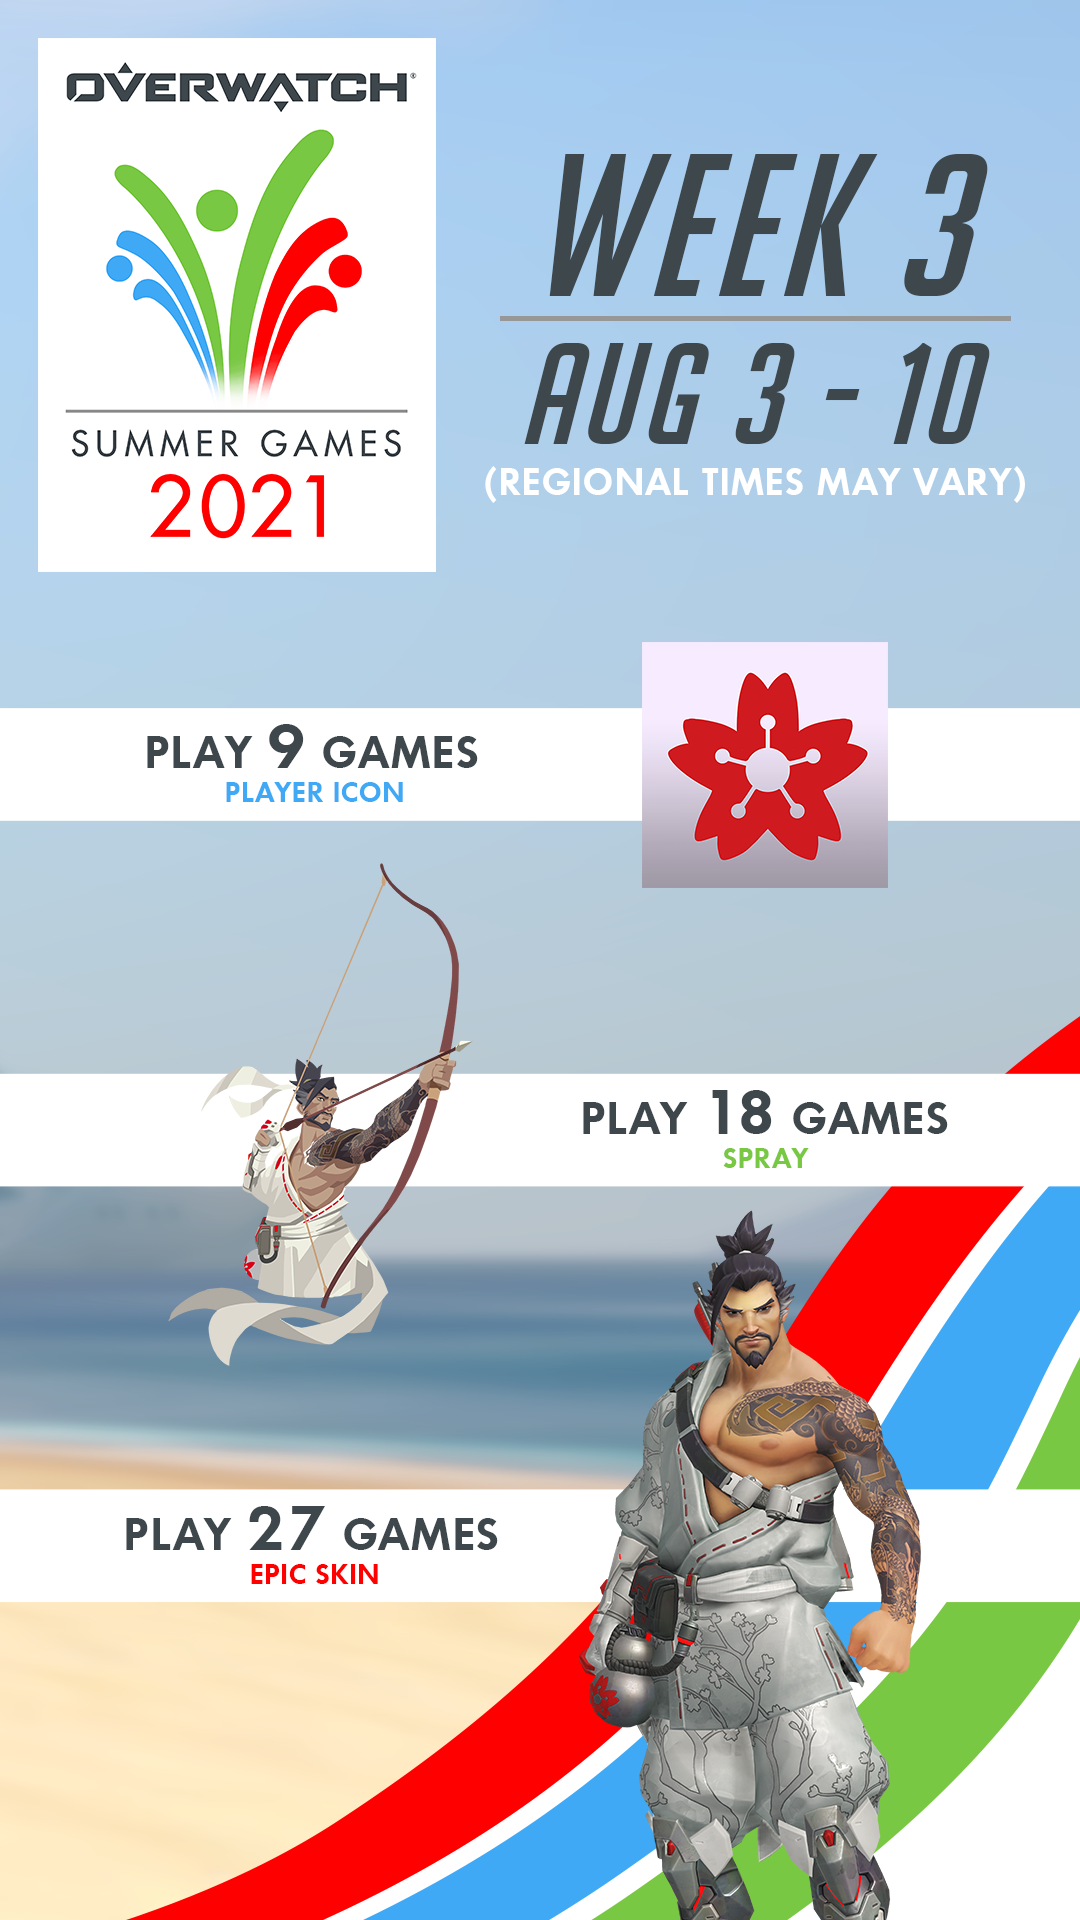 Earn Rewards for playing 9, 18, and 27 games.